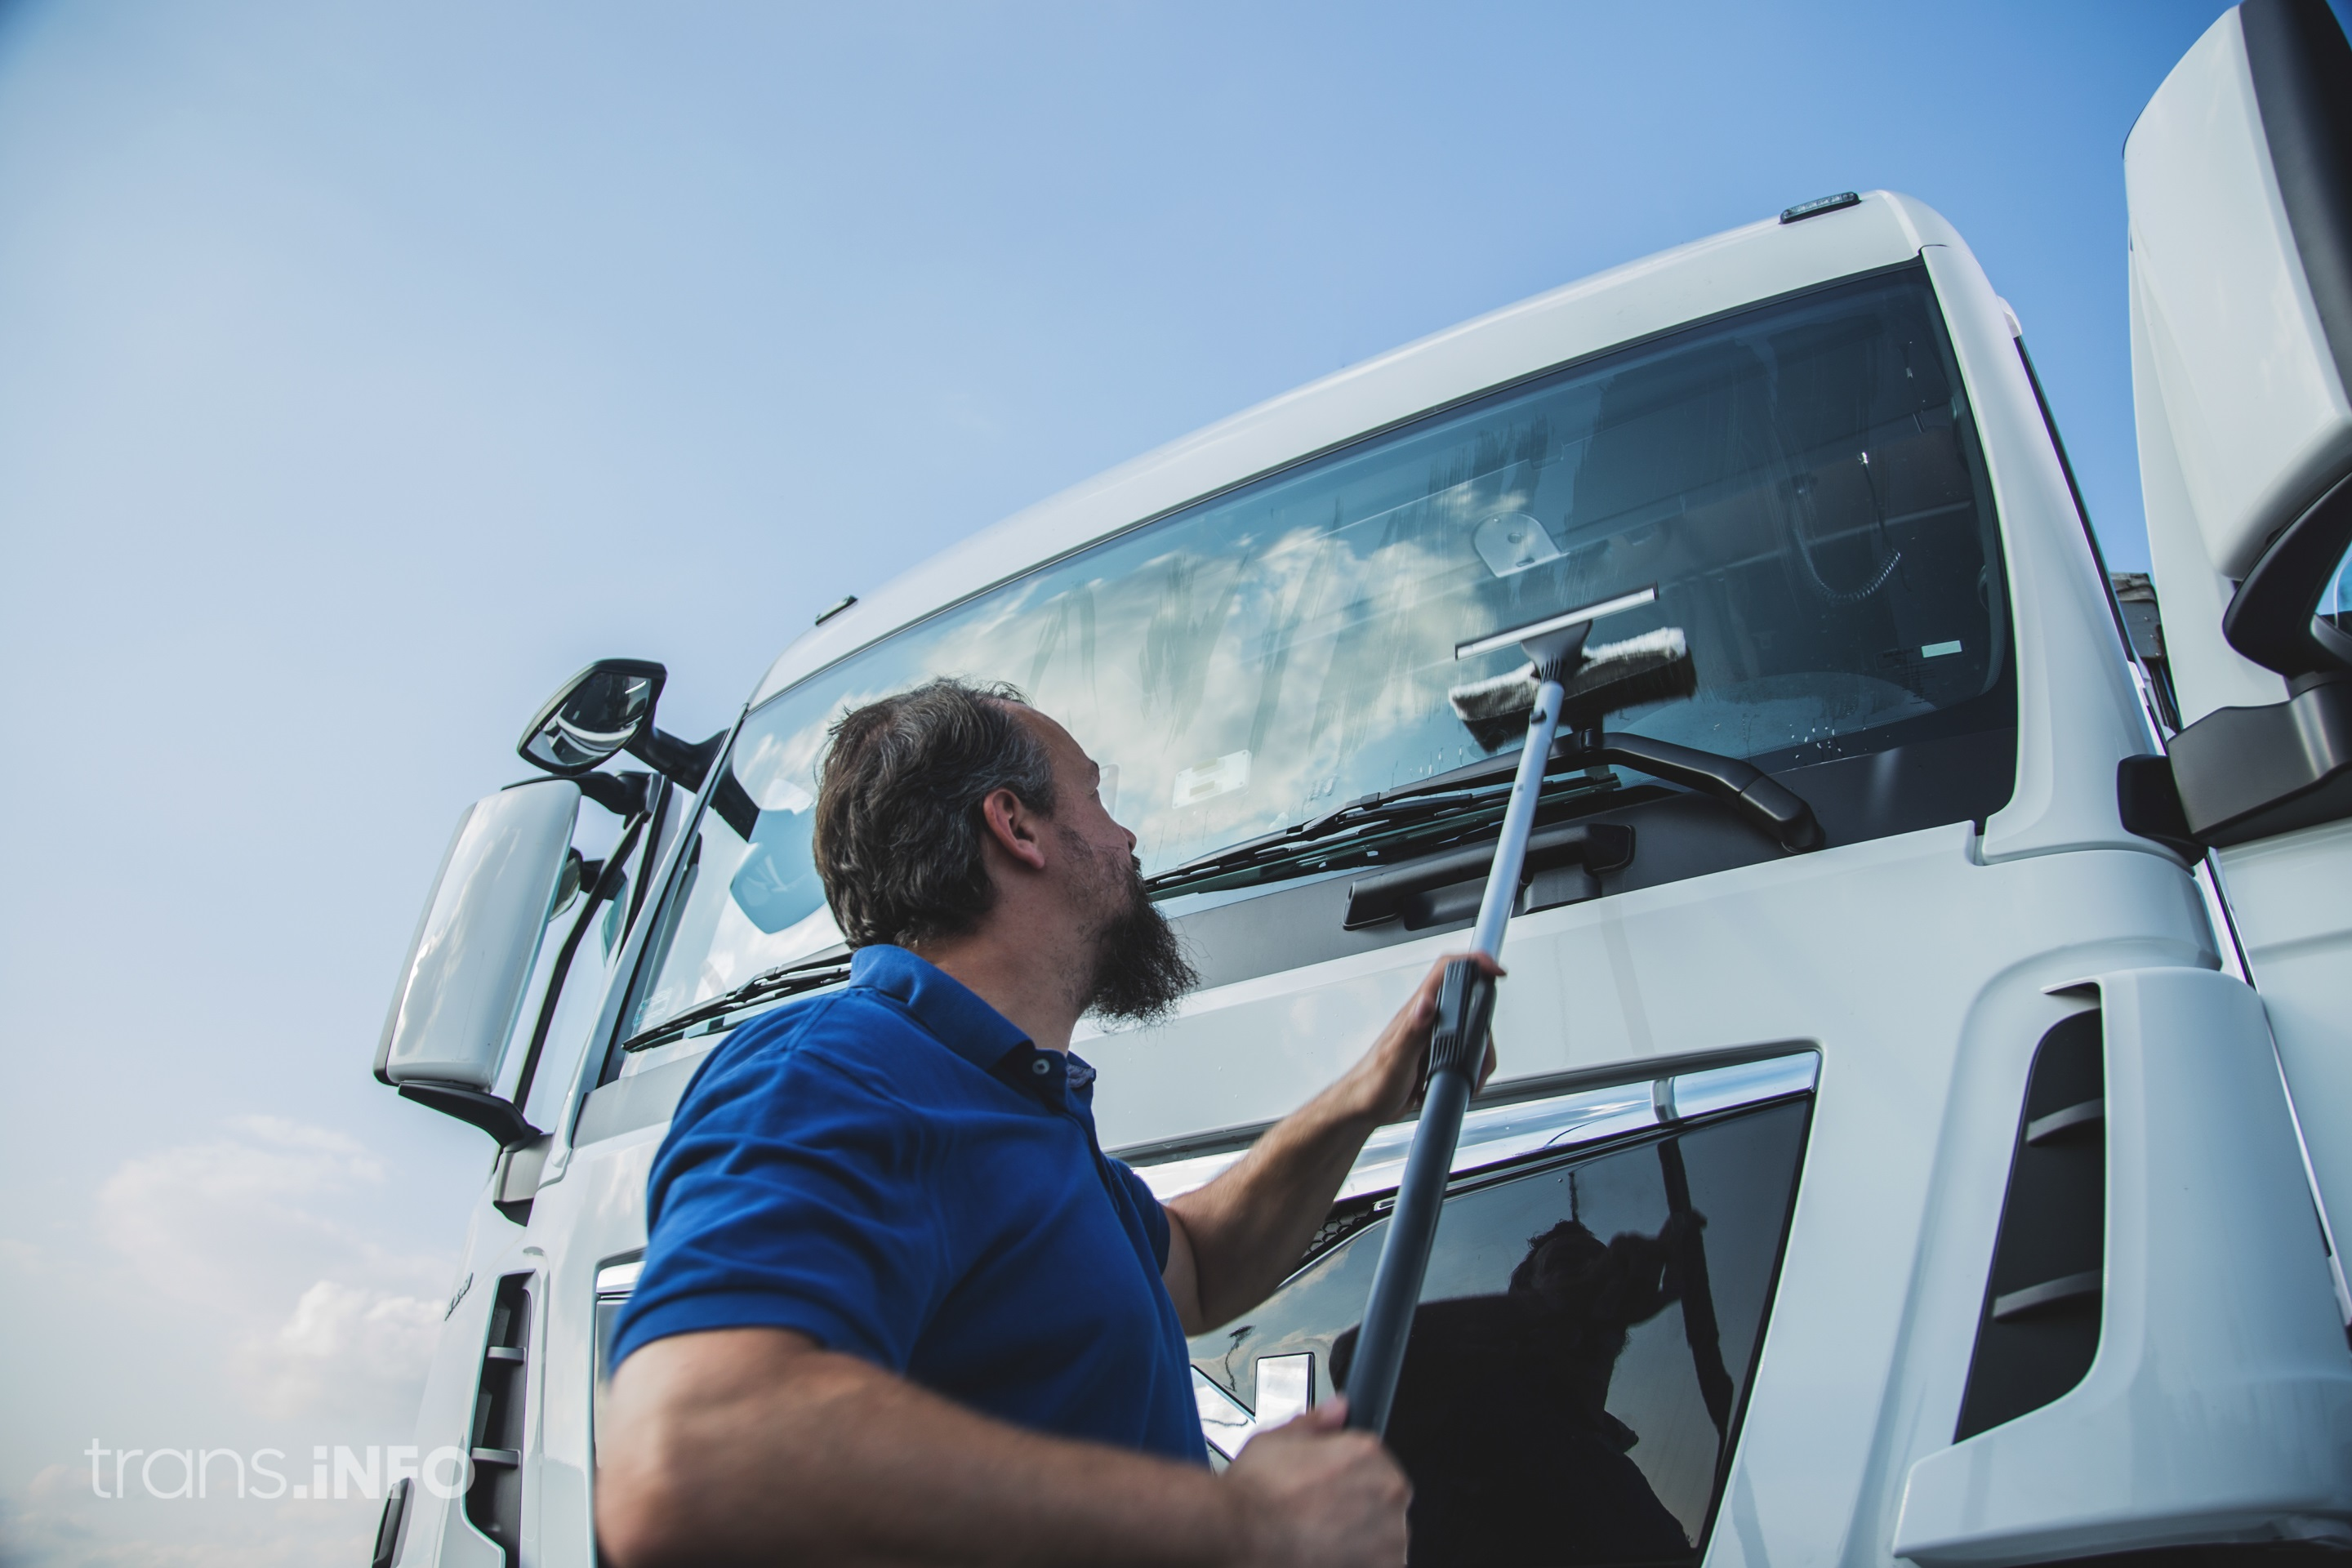 This is how you can clean your truck during coronavirus pandemic. Stay safe and stay healthy!